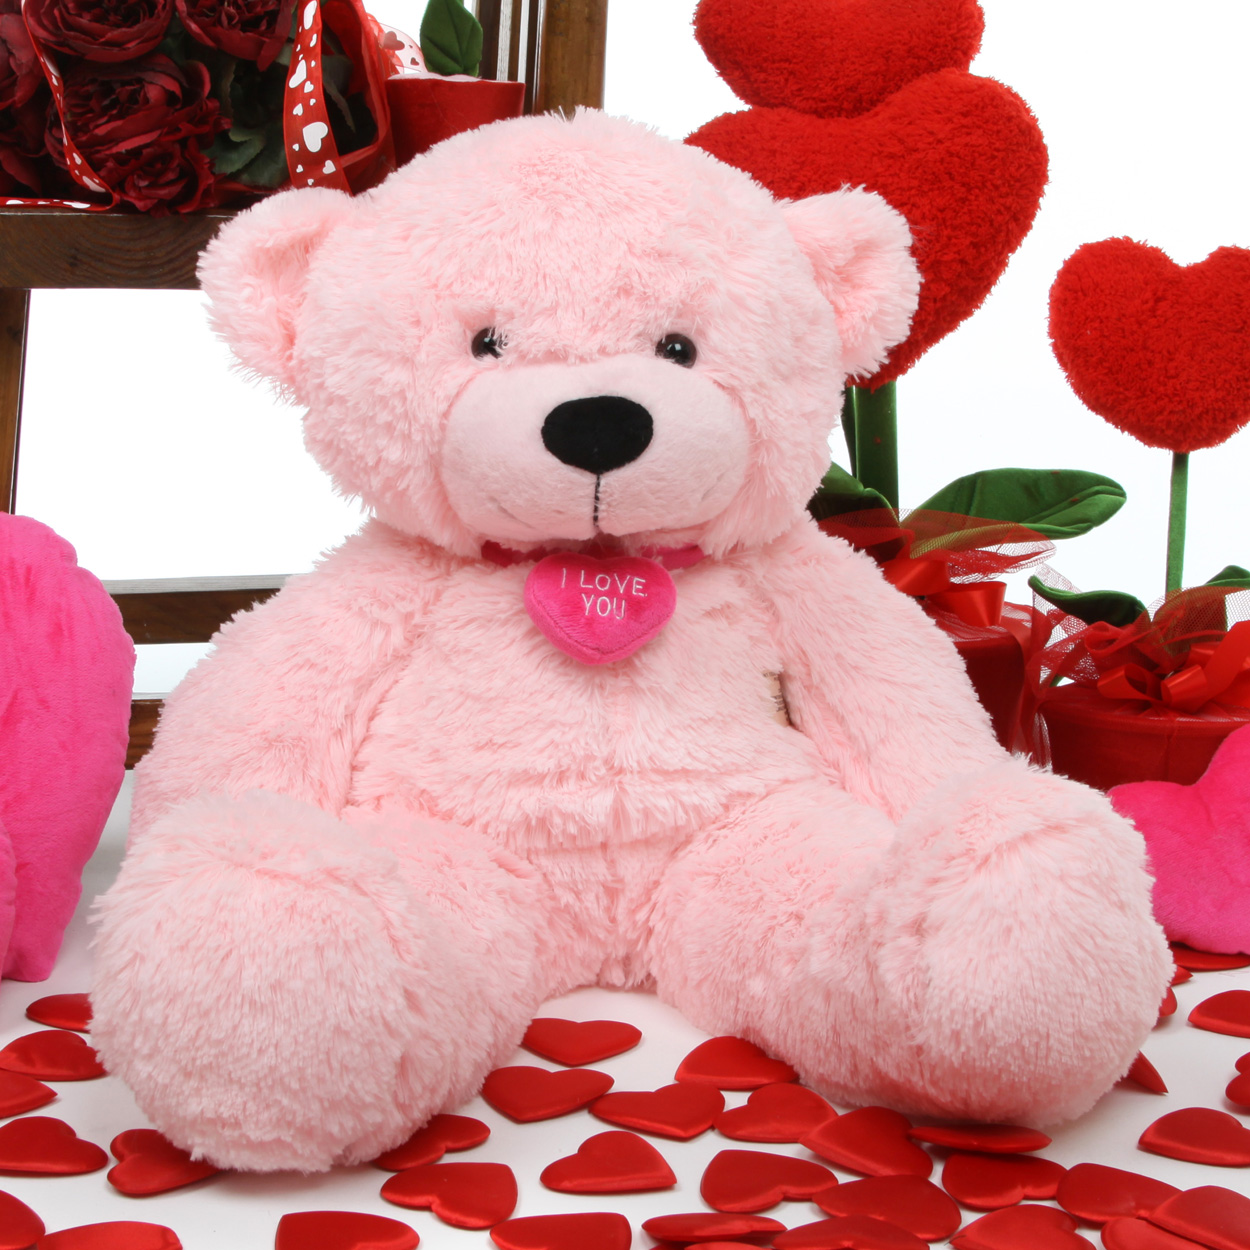 huge teddy bear valentines day